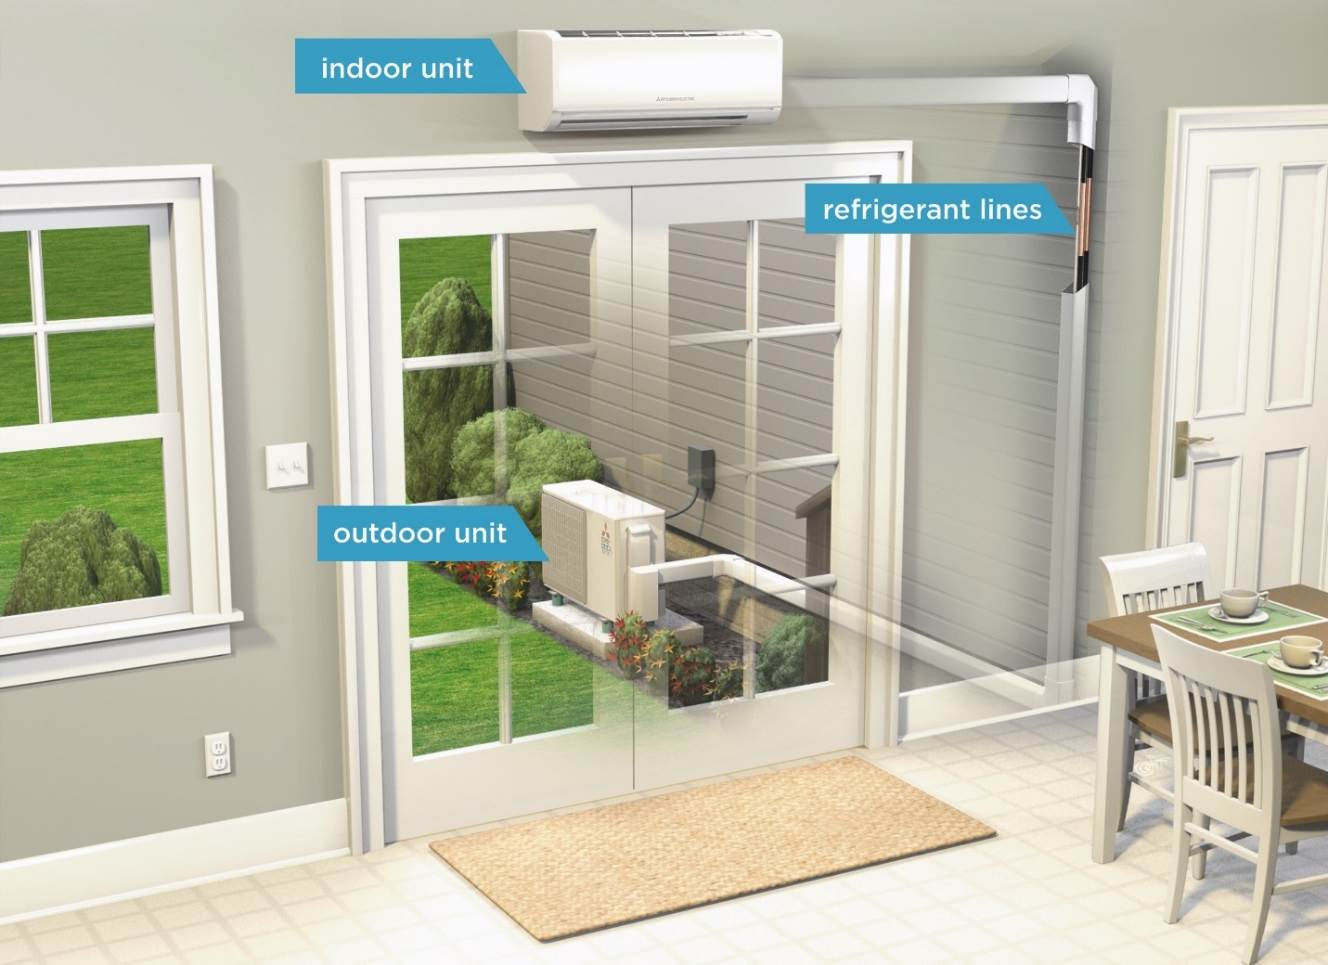 ductless mini-split heating and cooling system